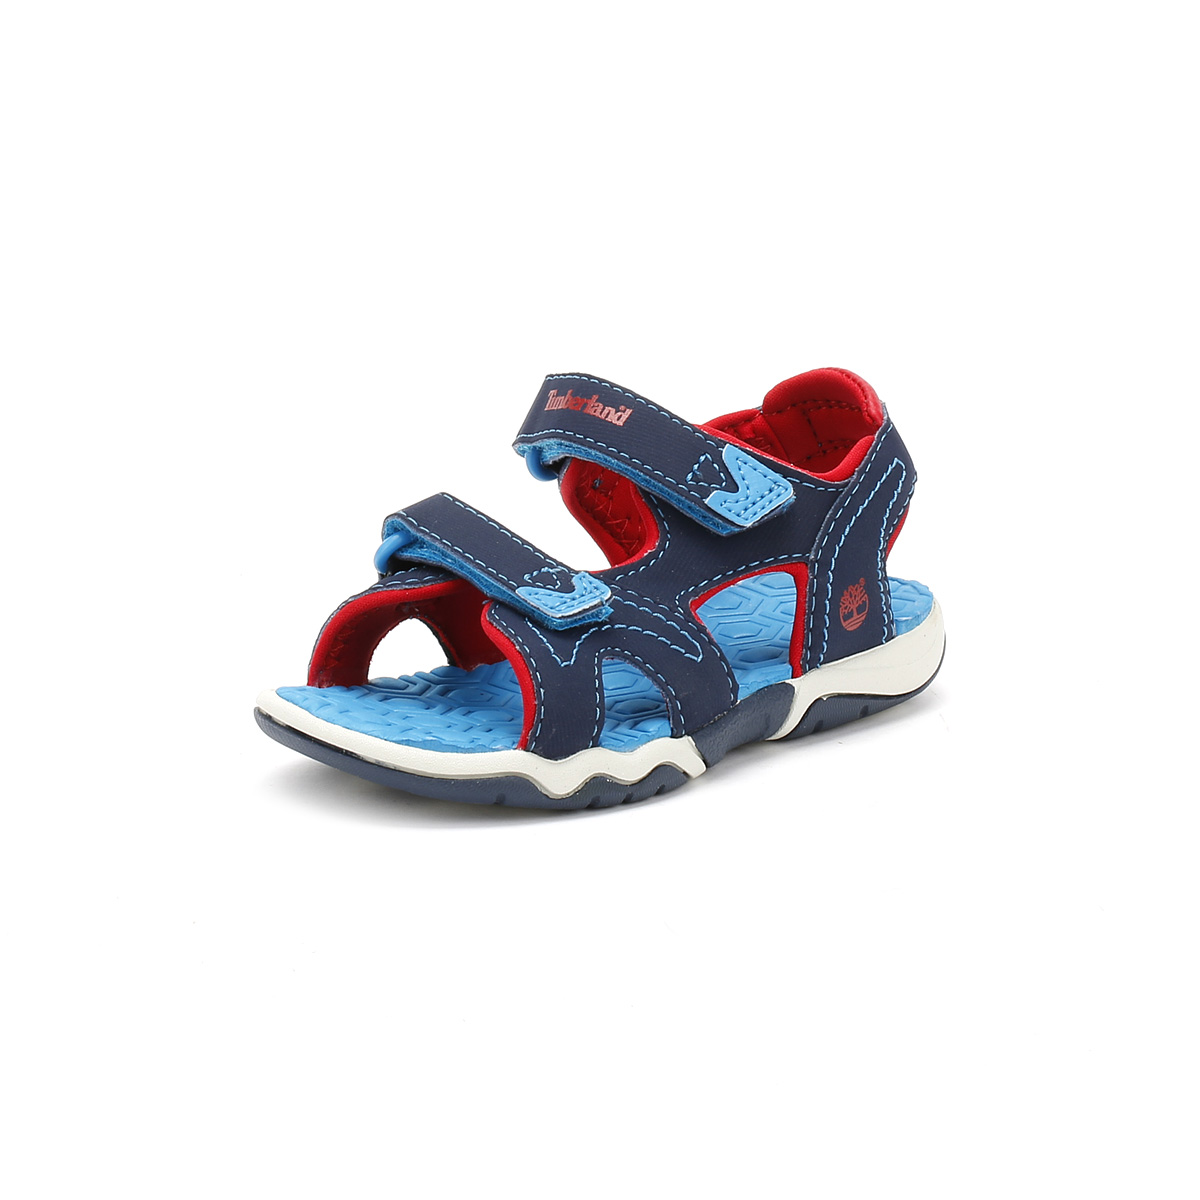 f63e3e6c9 Details about Timberland Toddlers Sandals, Navy/Blue/Red, Adventure Seeker,  2-Strap Shoes